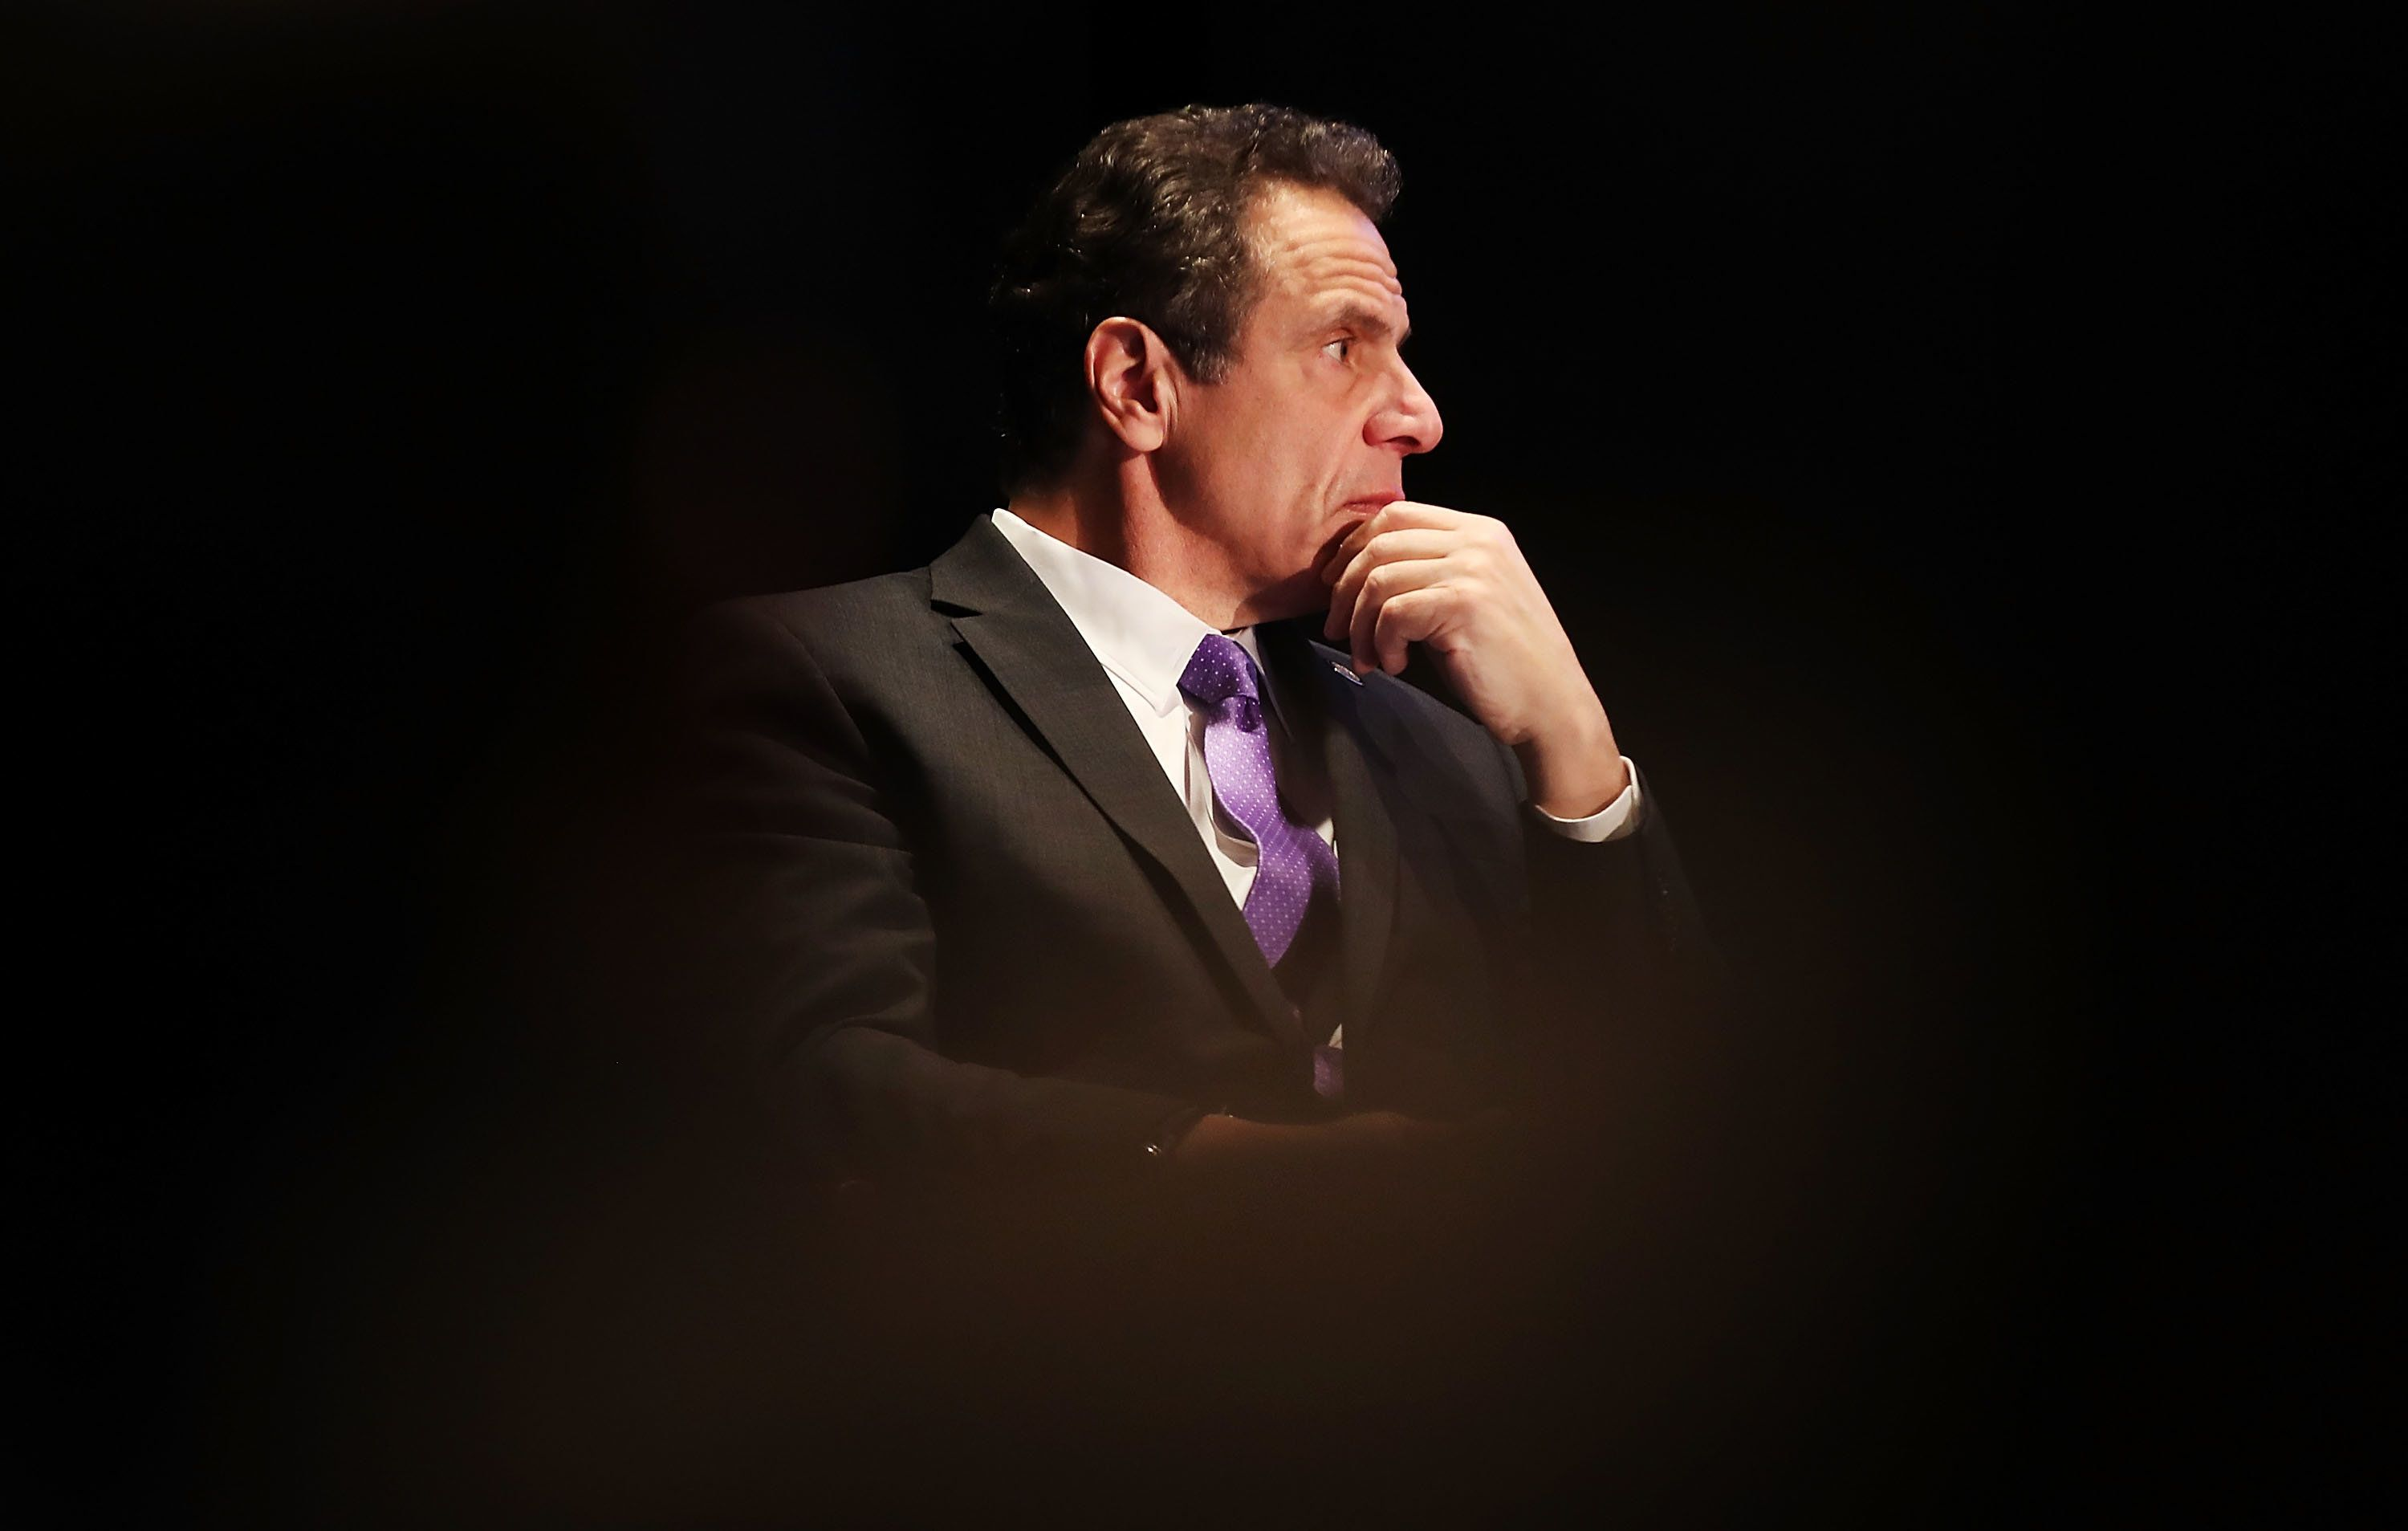 Andrew Cuomo Faces A Big Test On Climate Change. He's Already Failed Twice.